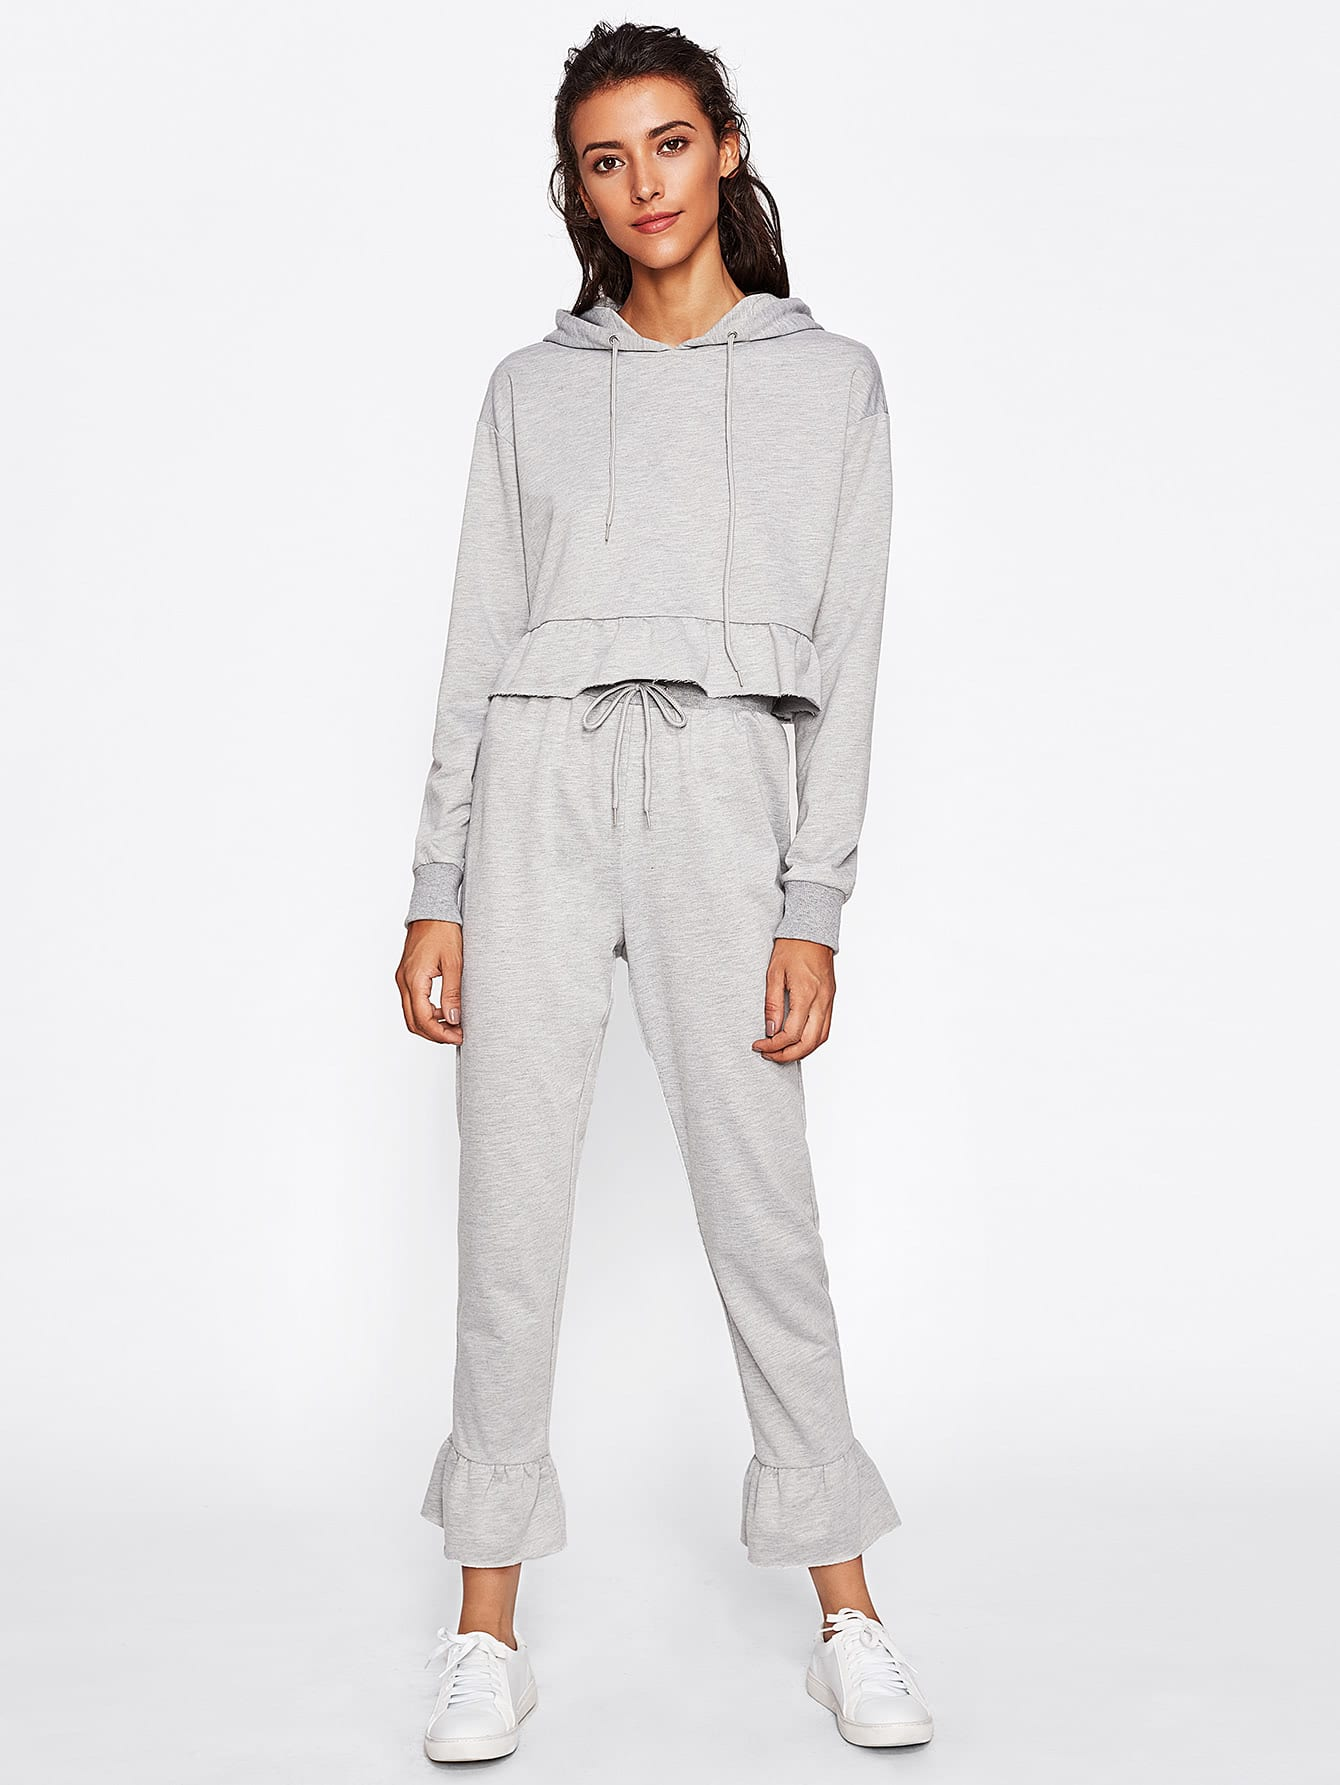 Ruffle Hem Hoodie And Bell Bottom Pants Set